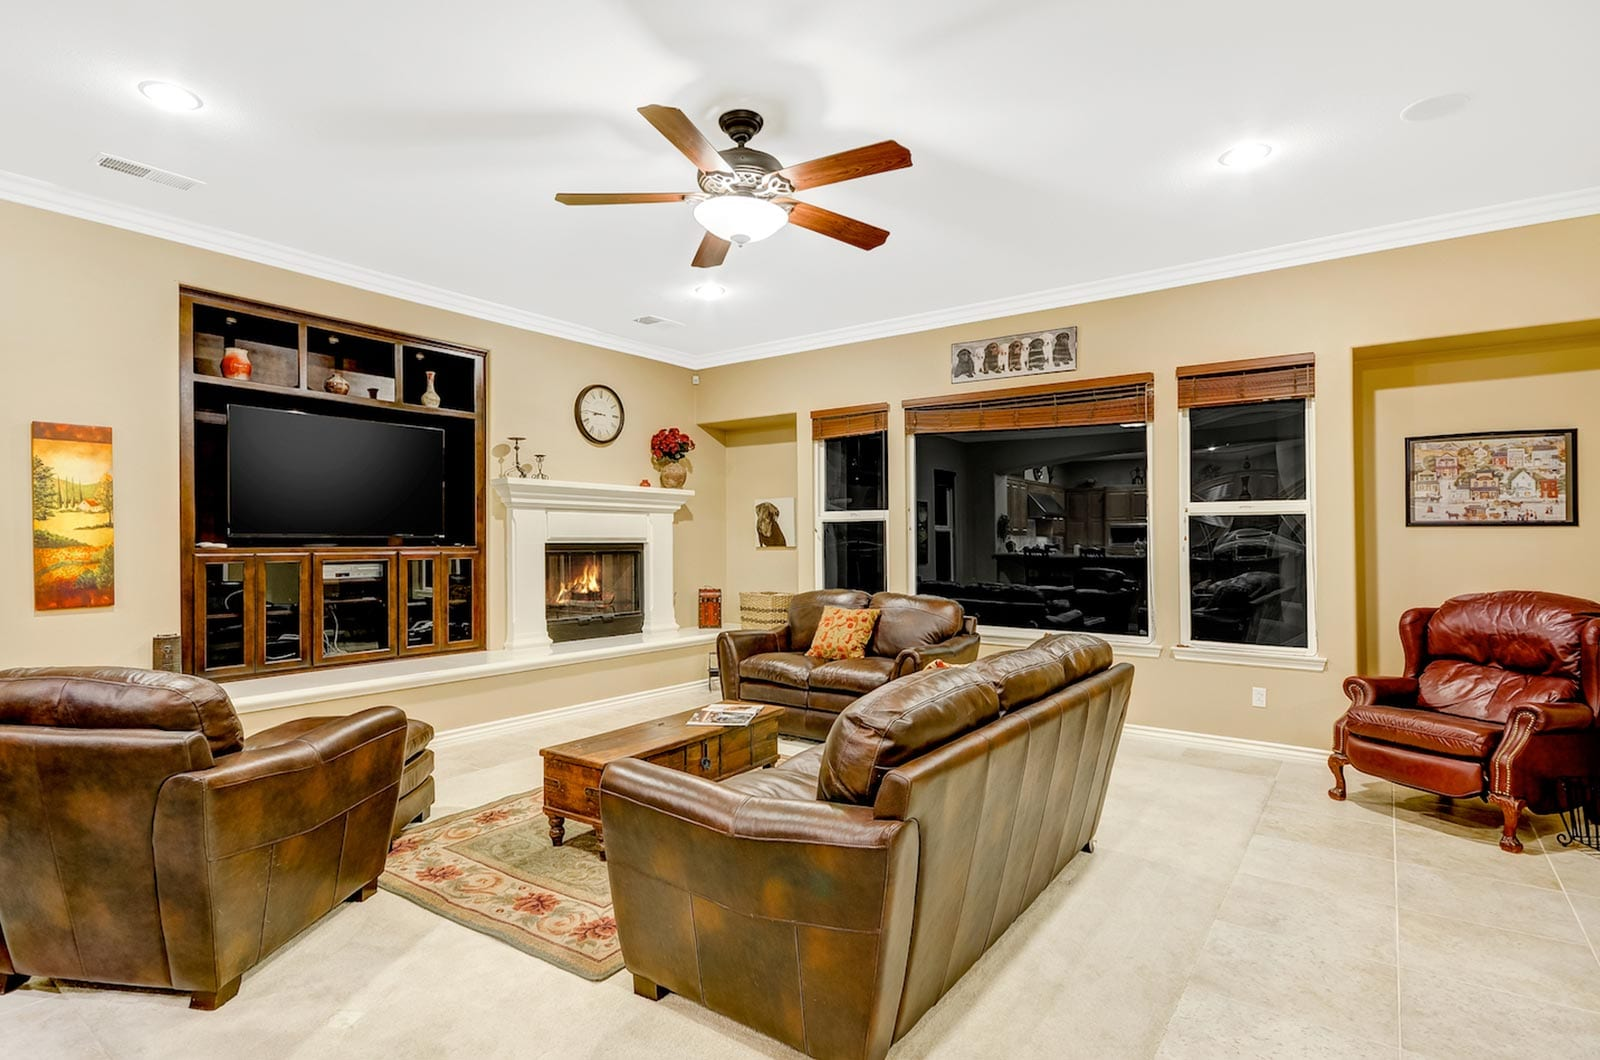 interior-photography-feat-image